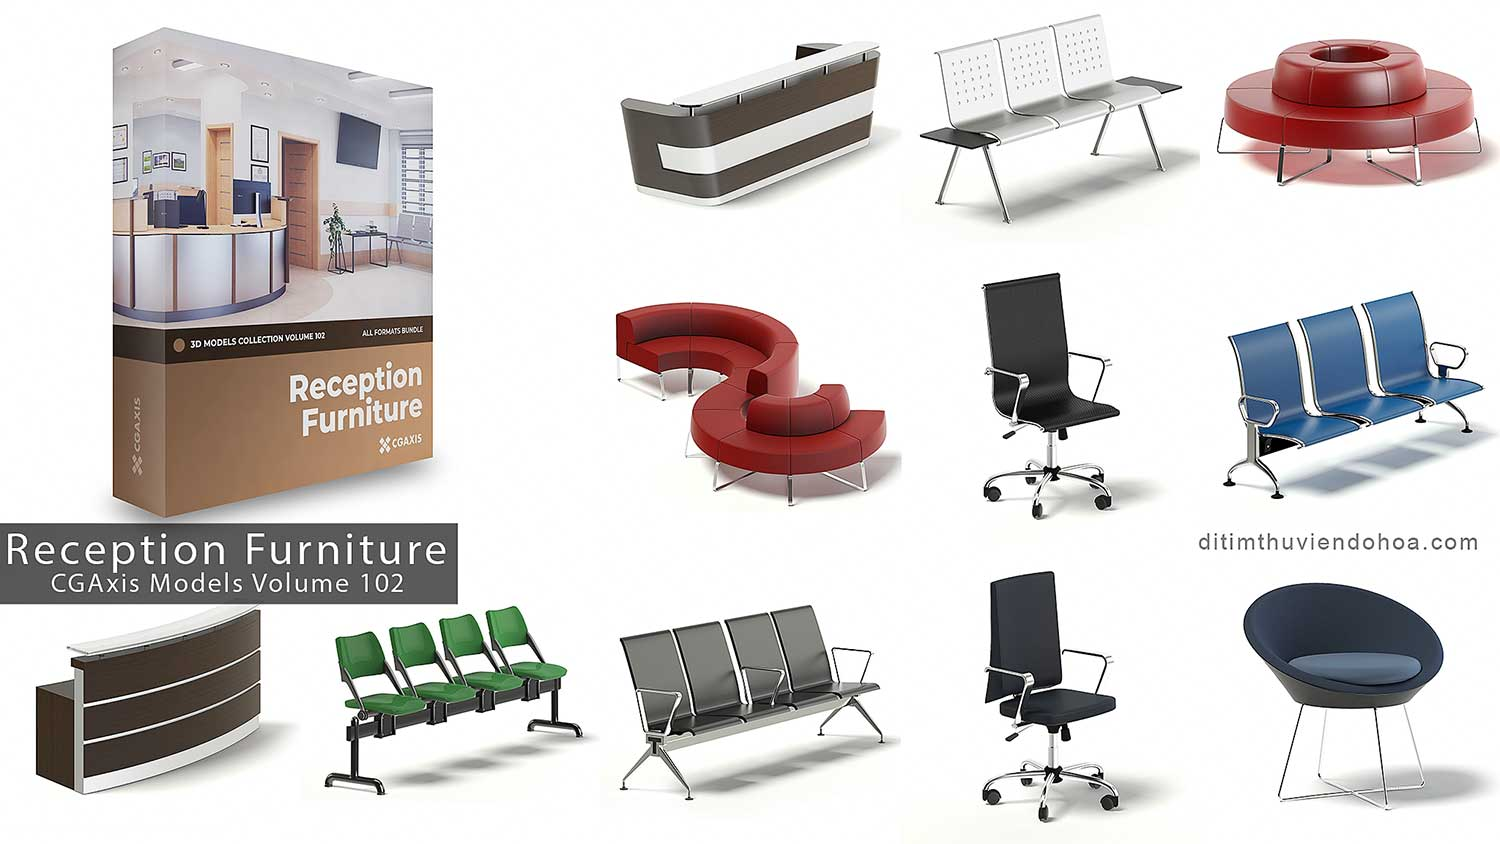 CGAxis Models Volume 102-Reception Furniture